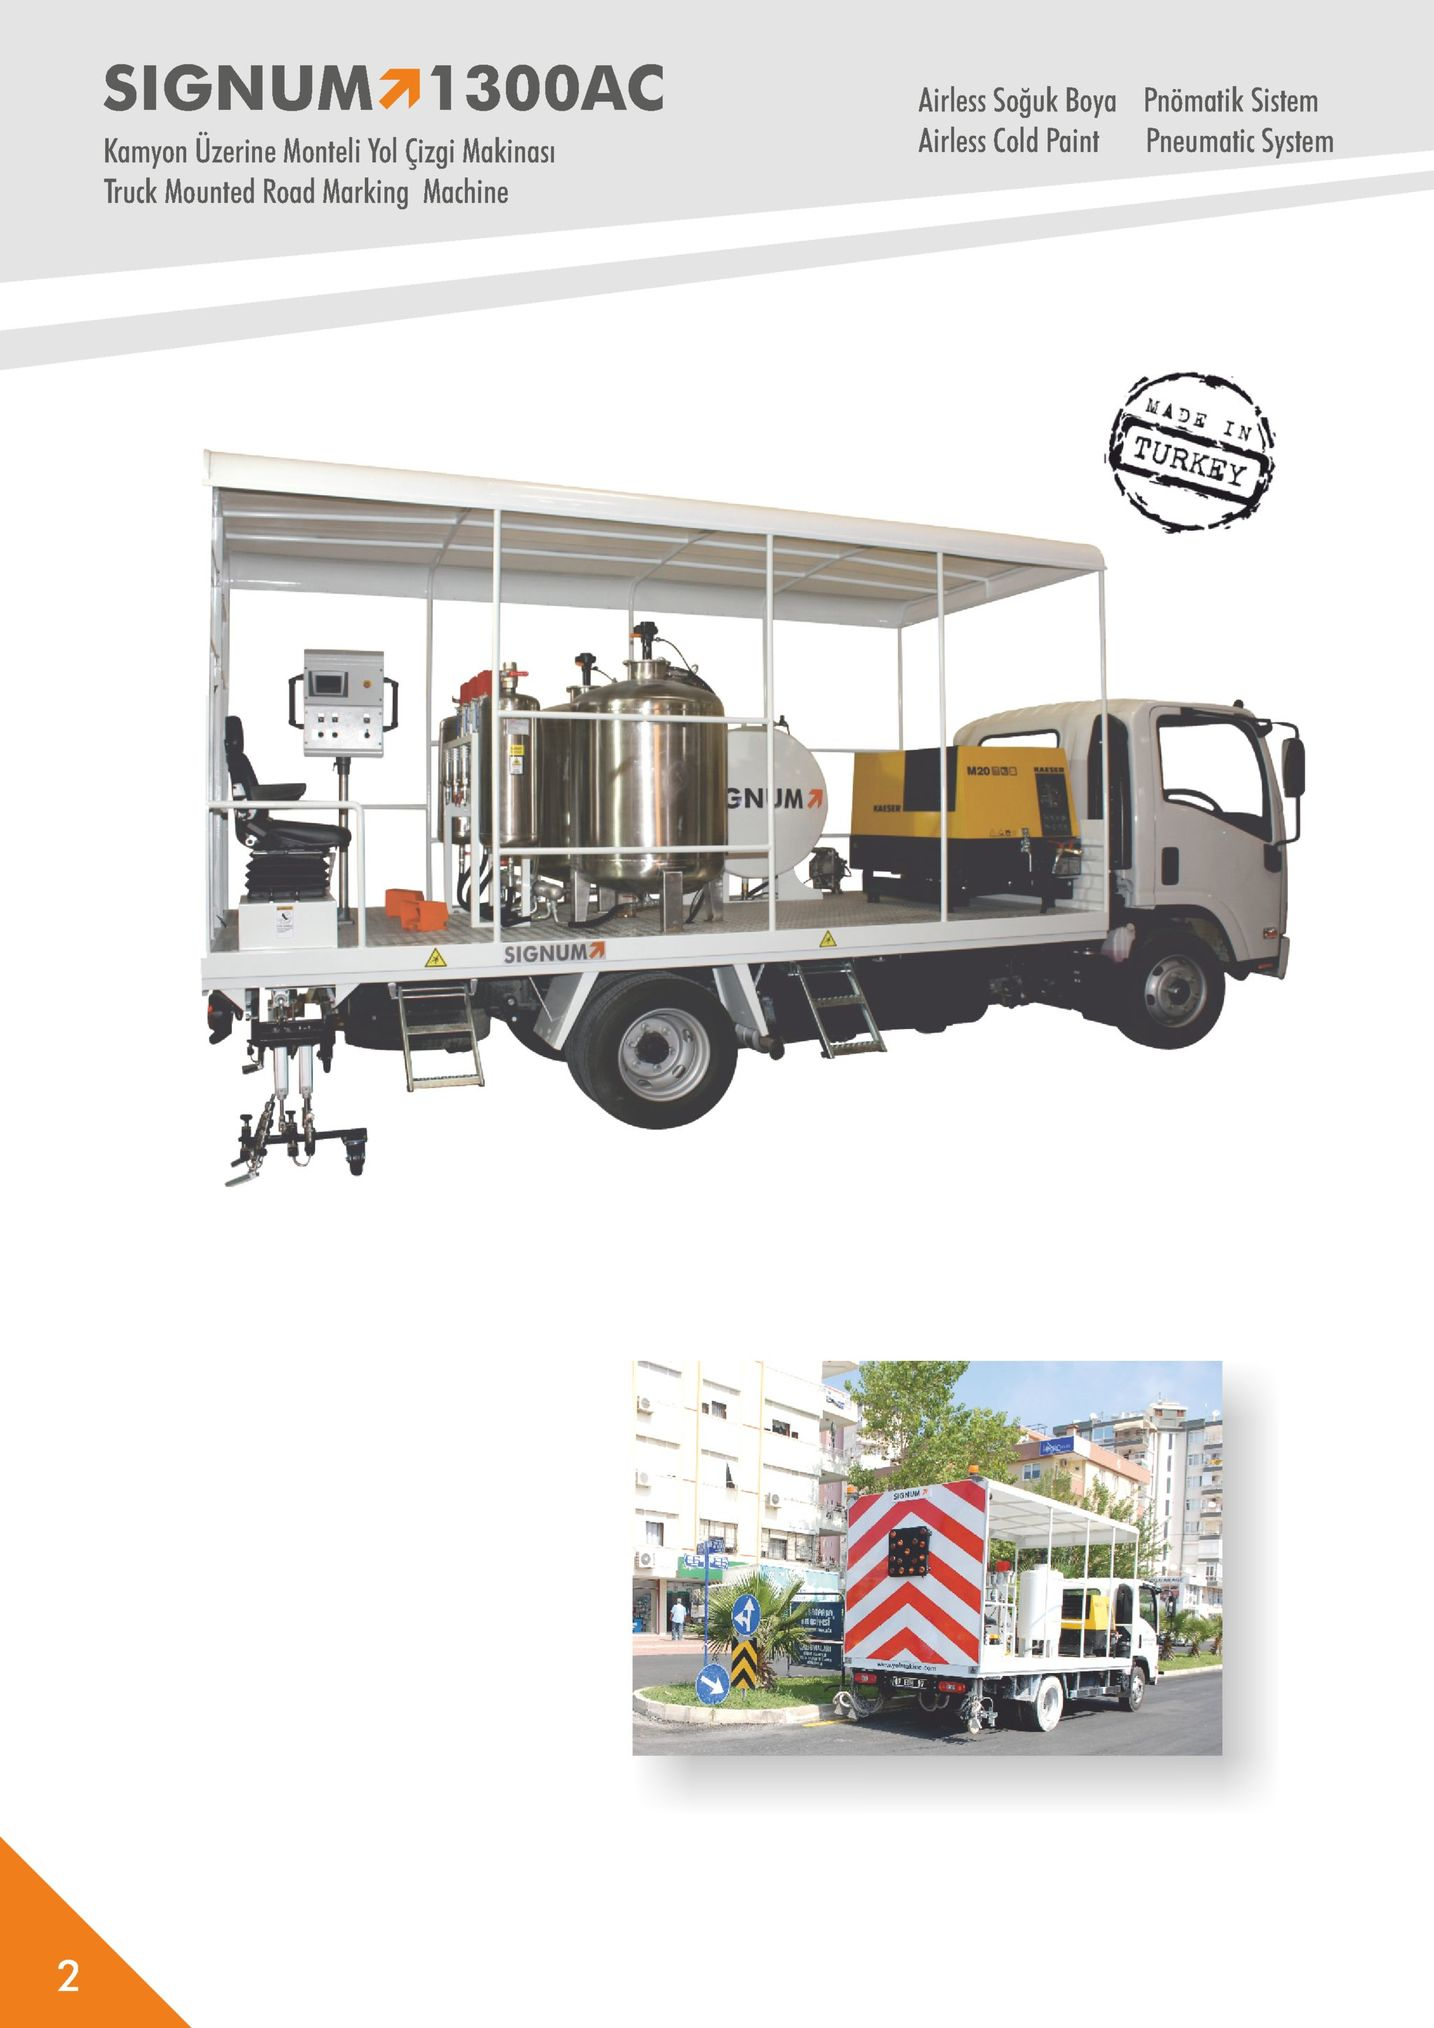 signum71300ac airless soğuk boya airless cold paint pnömatik sistem pneumatic system kamyon uzerine monteli yol çizgi makinas truck mounted road marking machine turkey n jma aise asignum7